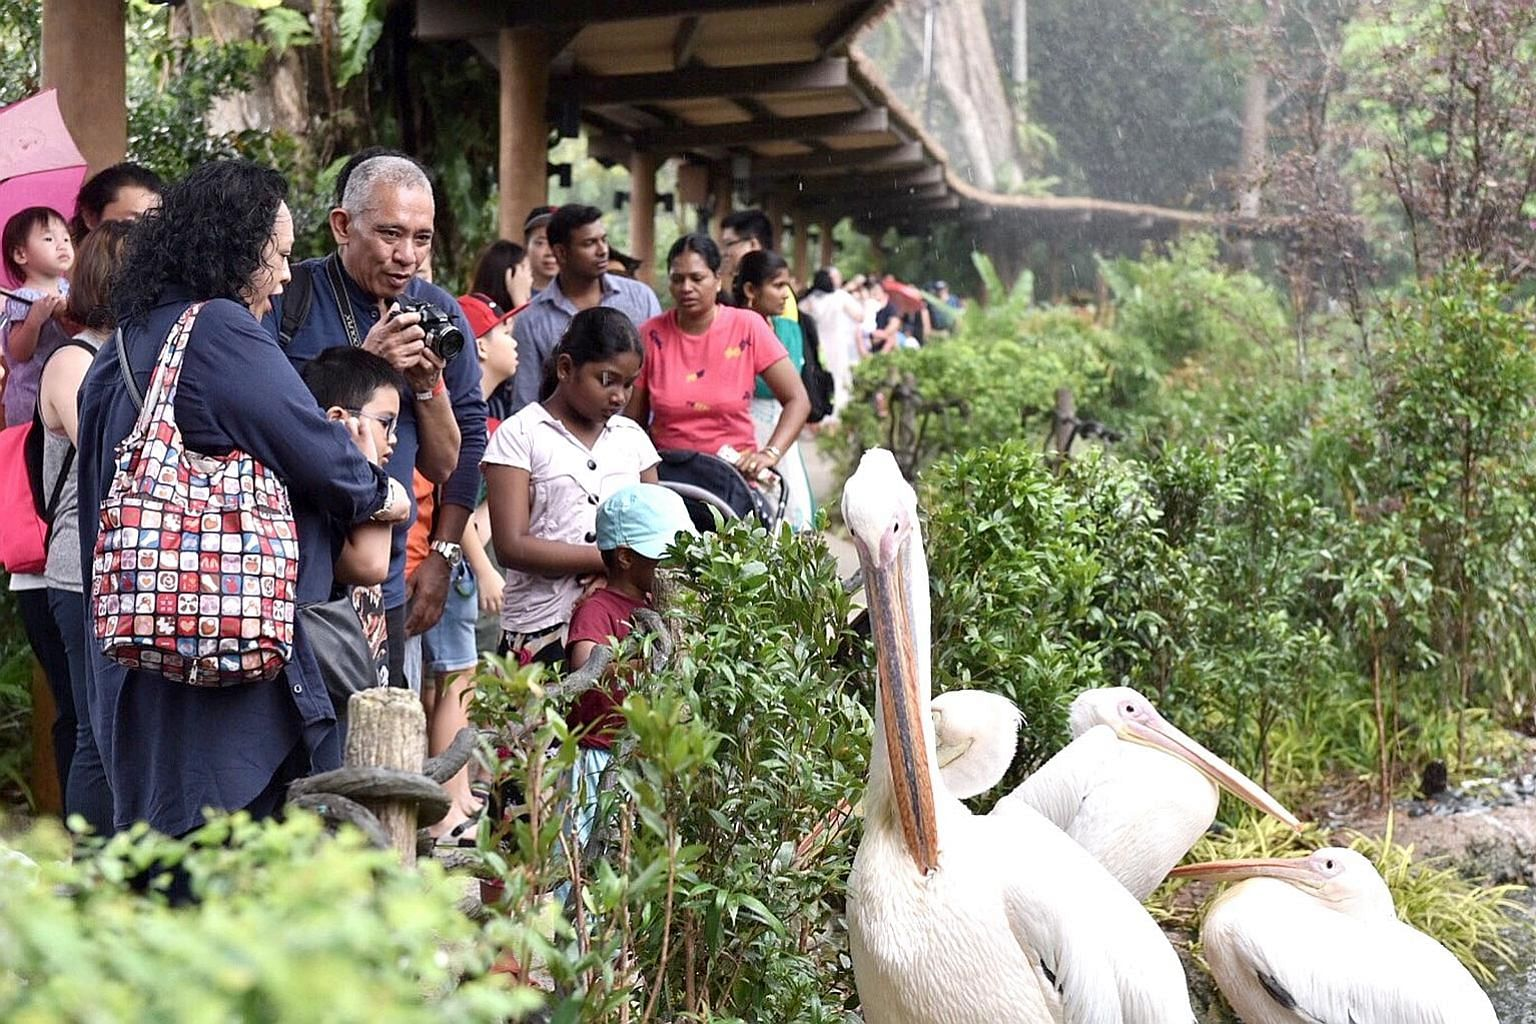 Mr Hasman Tahir (with camera), 53, and his wife, Madam Saminah Abdullah, 47, with their son Aqashah Tahhirruddin Tahir, seven, at the Singapore Zoo on Sunday morning. The People's Association and Wildlife Reserves Singapore have teamed up to launch a